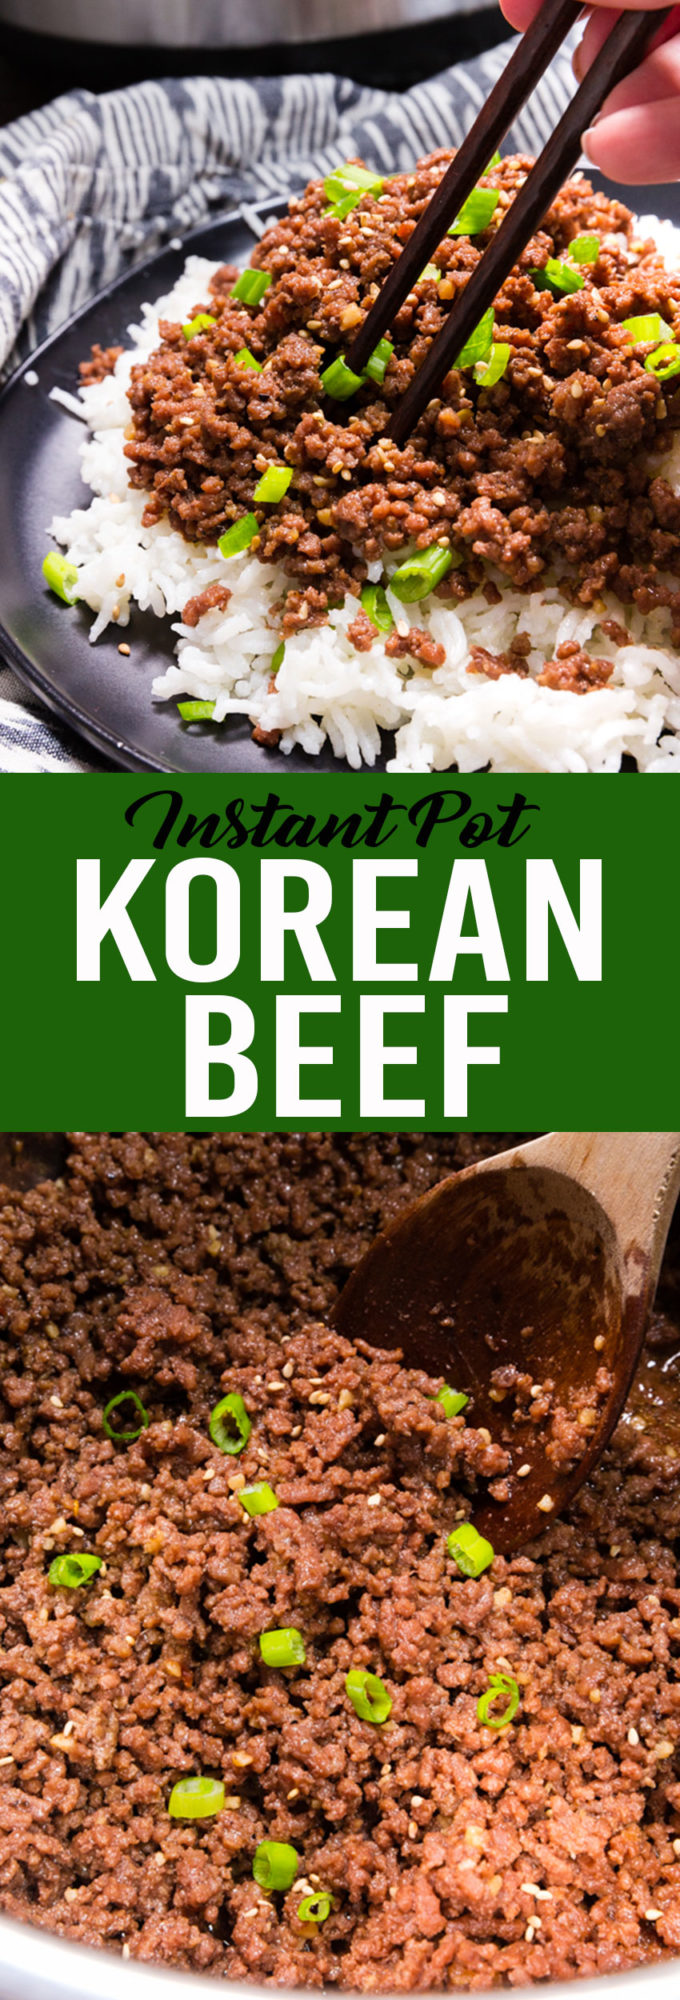 Easy to make sweet and spicy Korean Beef made in the instant pot pressure cooker